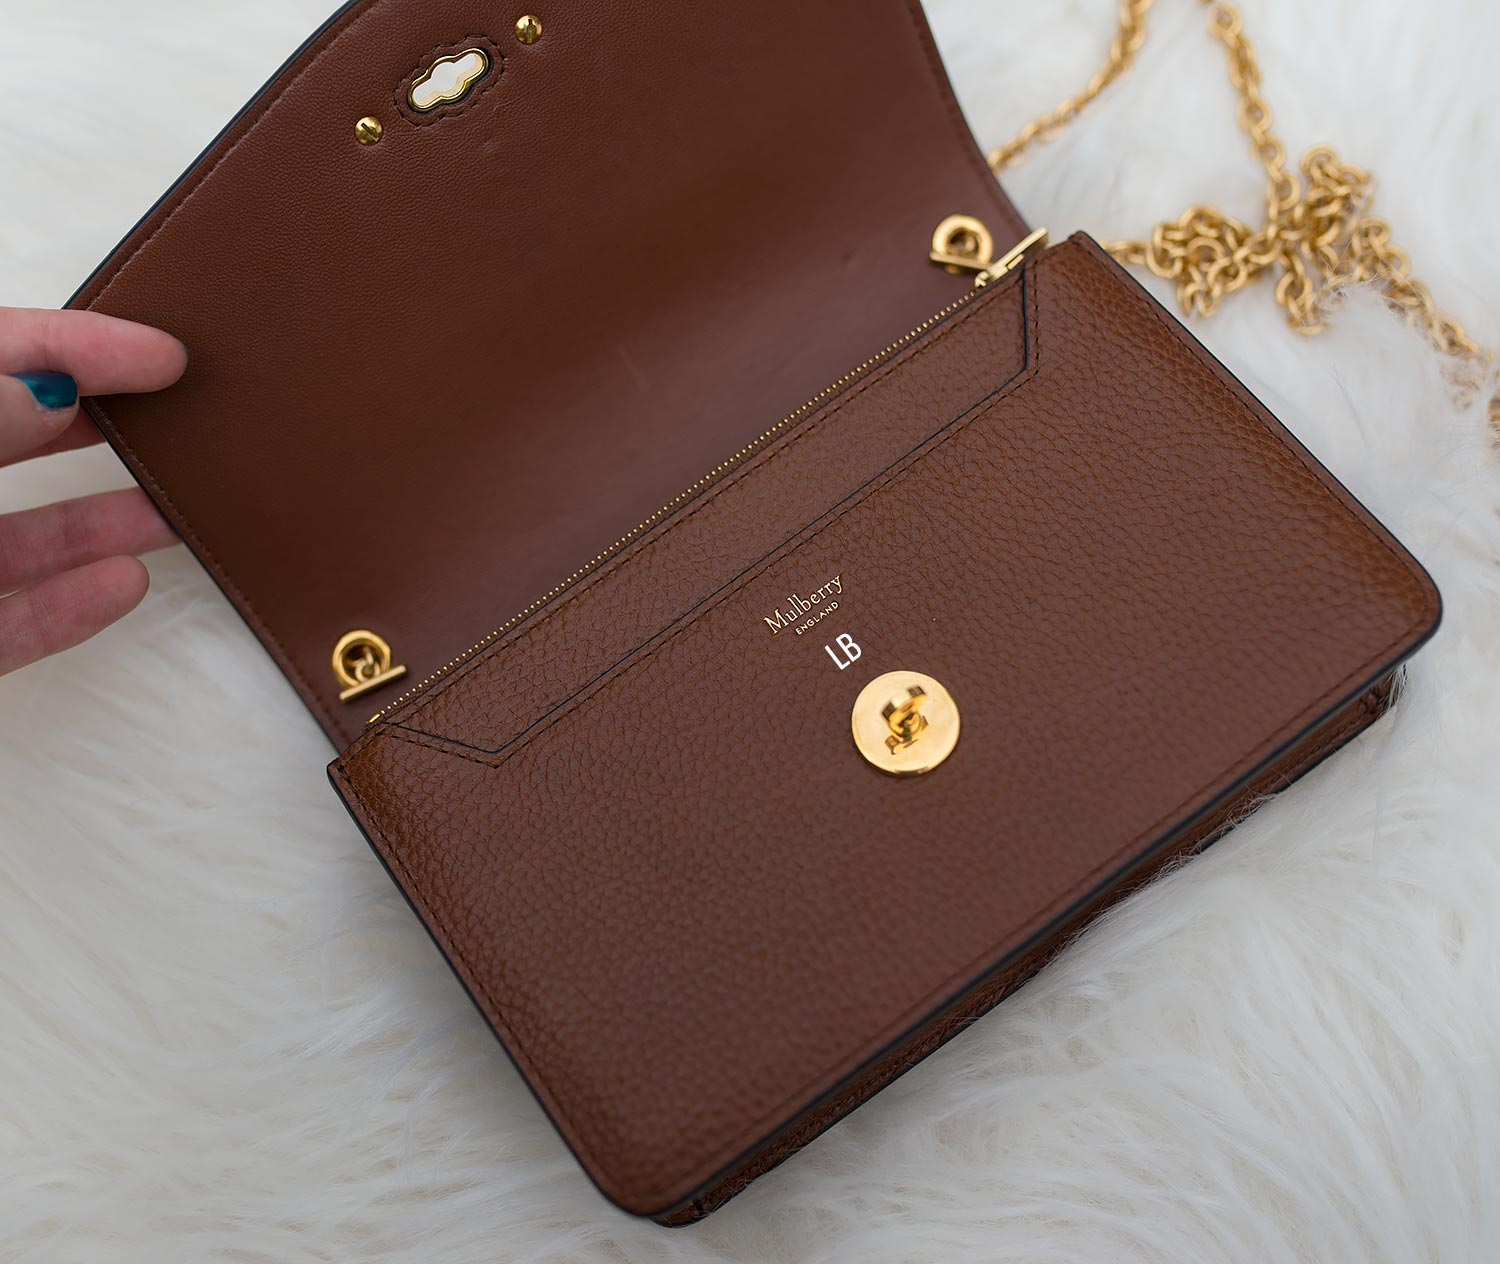 41bce8c14ec9 Click here to buy Mulberry Darley Bags online at Mulberry.com